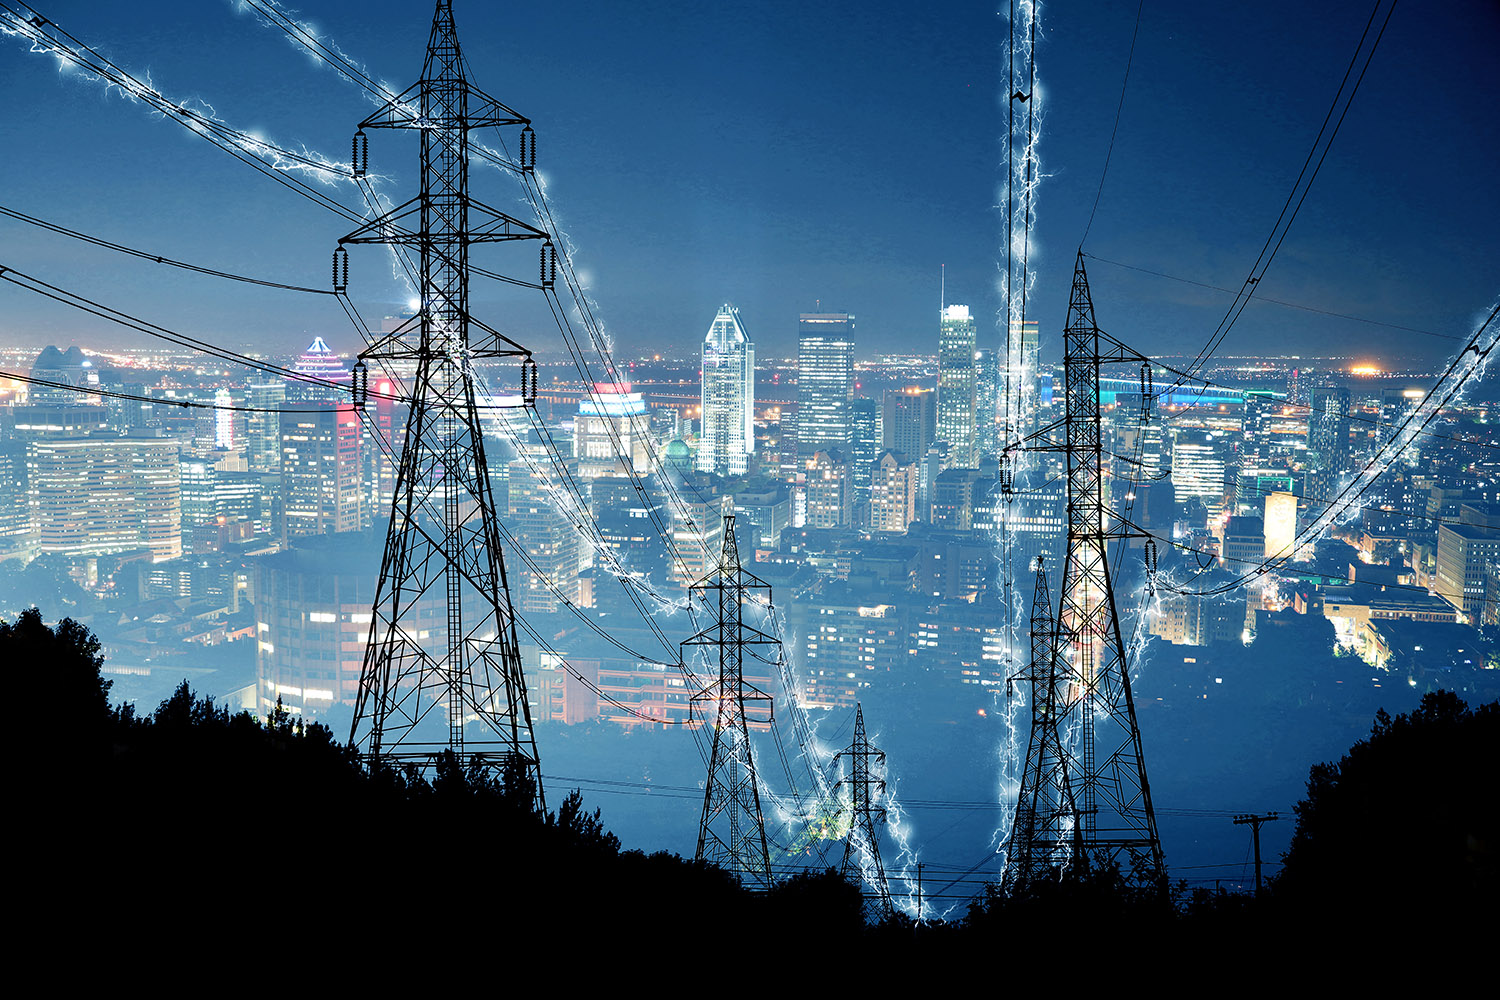 Metropolitan Electrification in Blue - Royalty-Free Stock Imagery